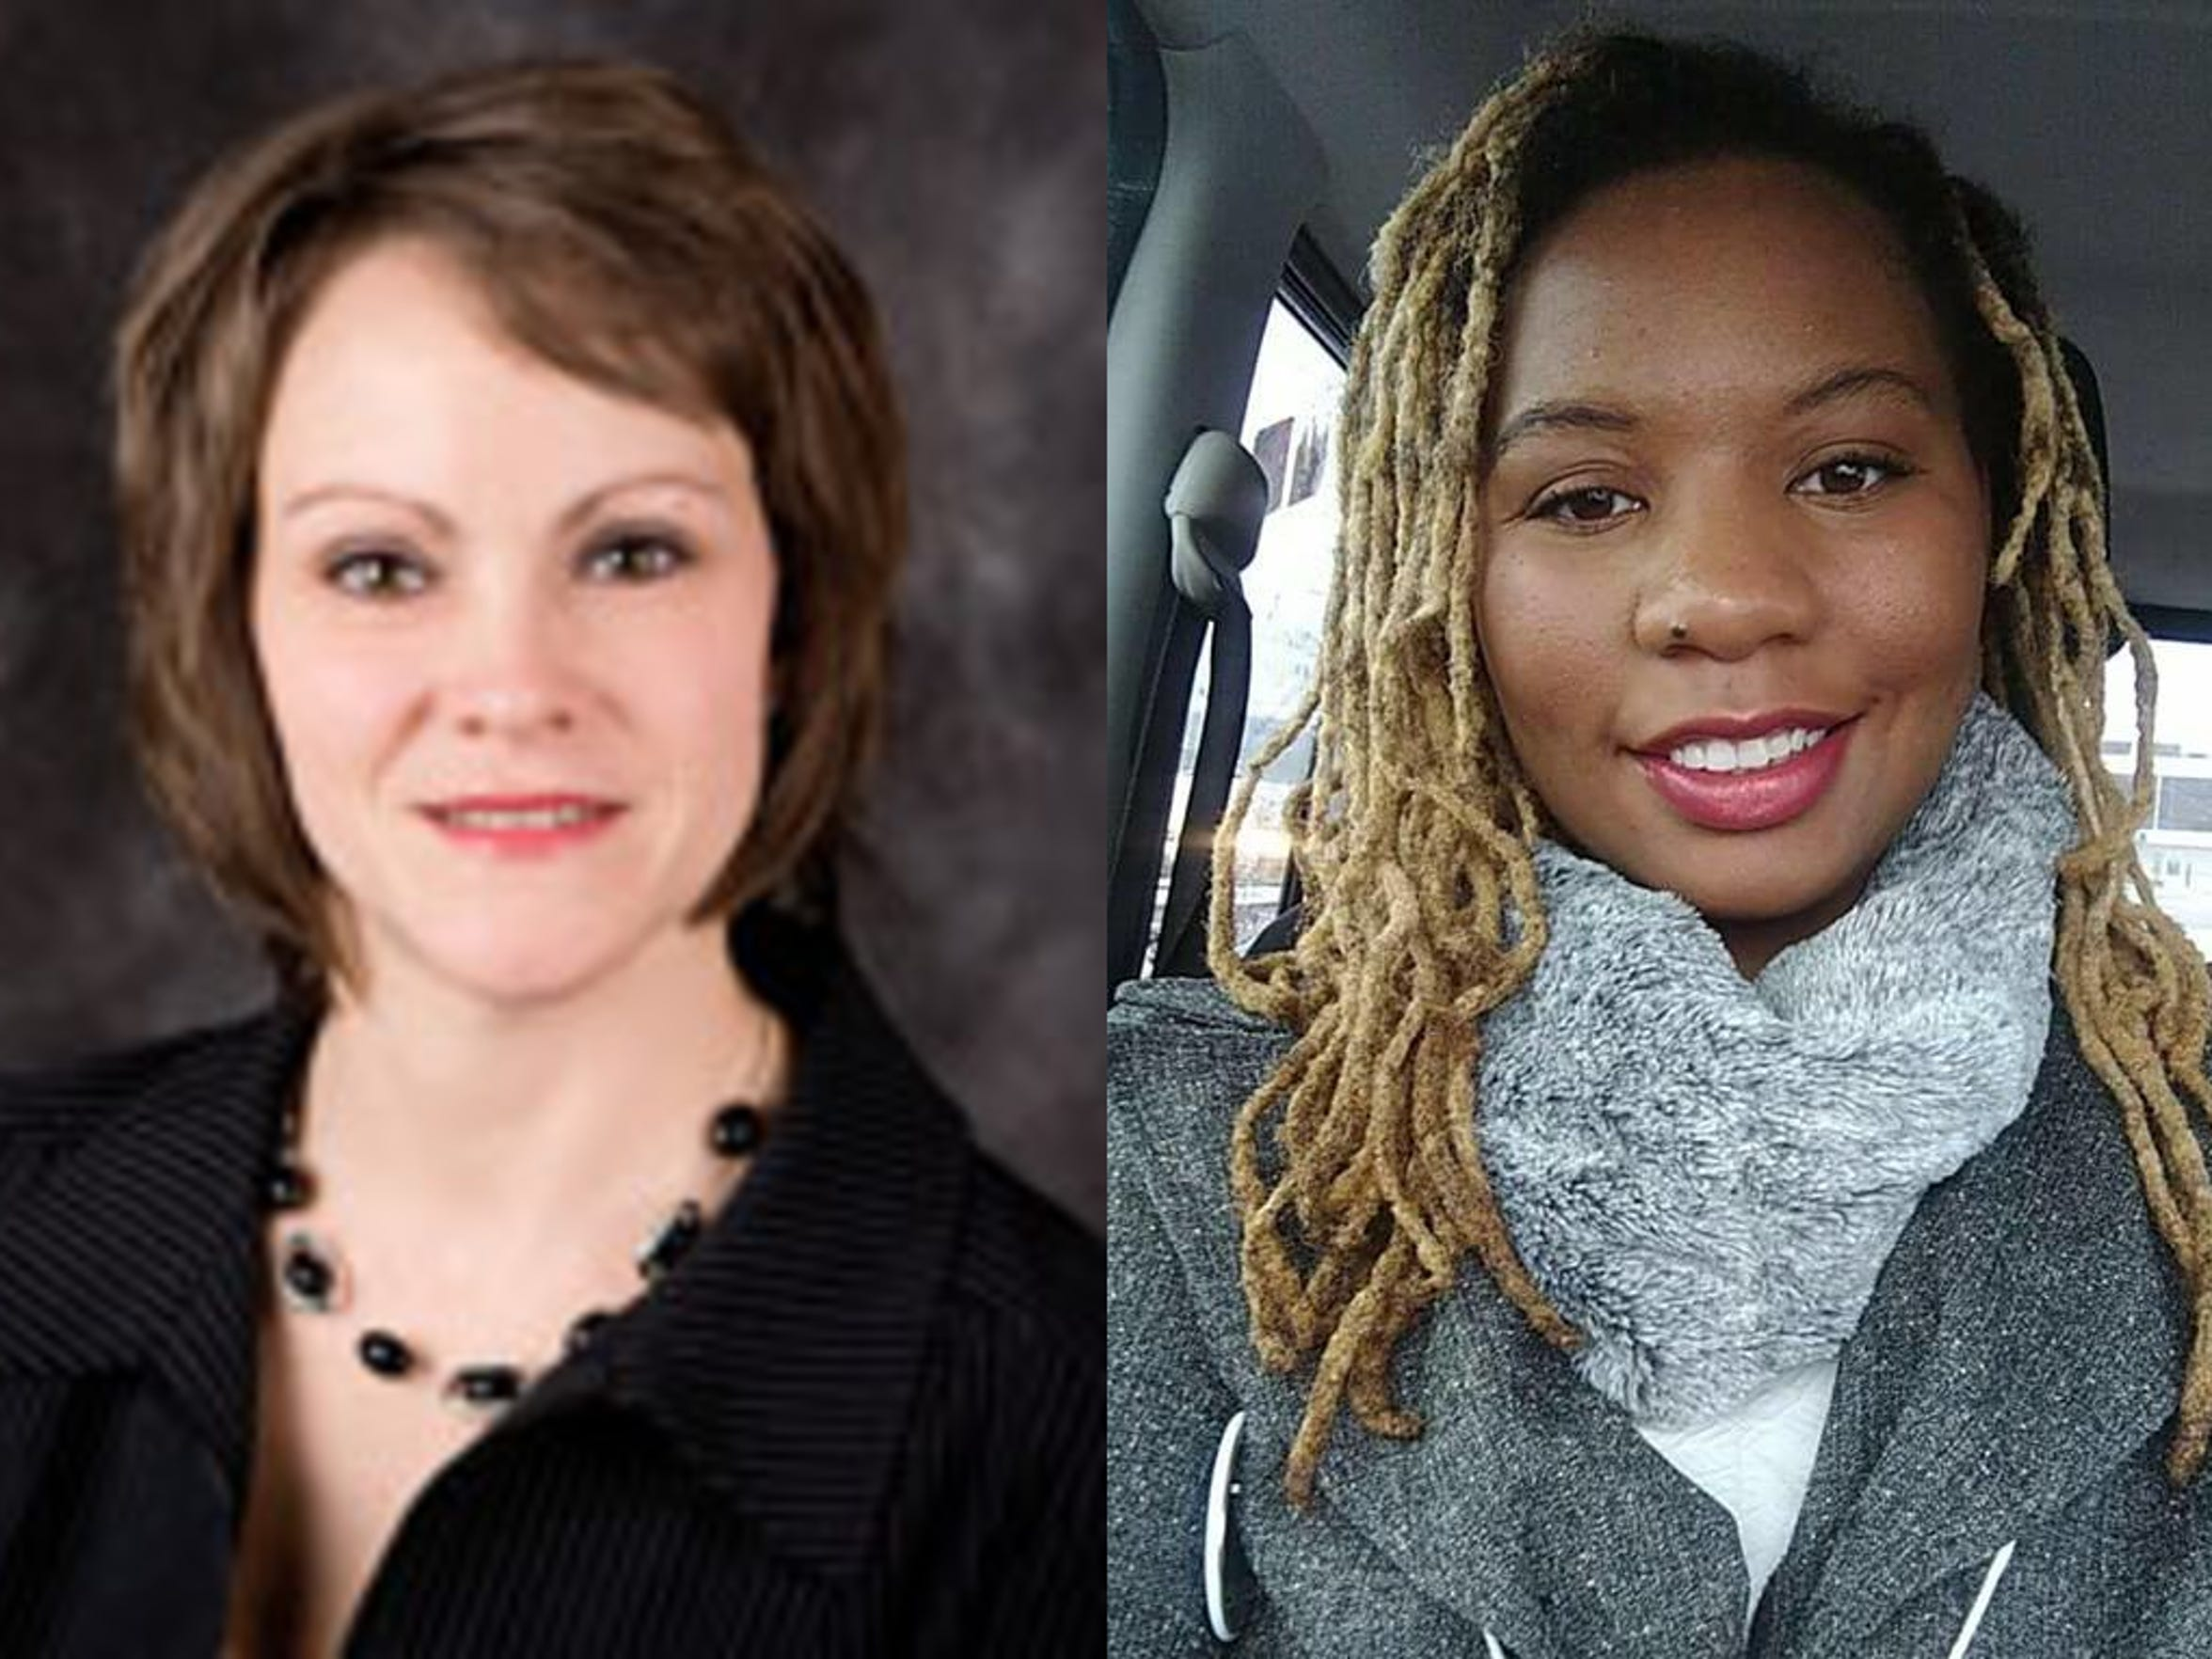 Cheryl Dawson-Spaulding and Jamille, or Mia, Jones will face off in the November general election for Greene County Recorder.